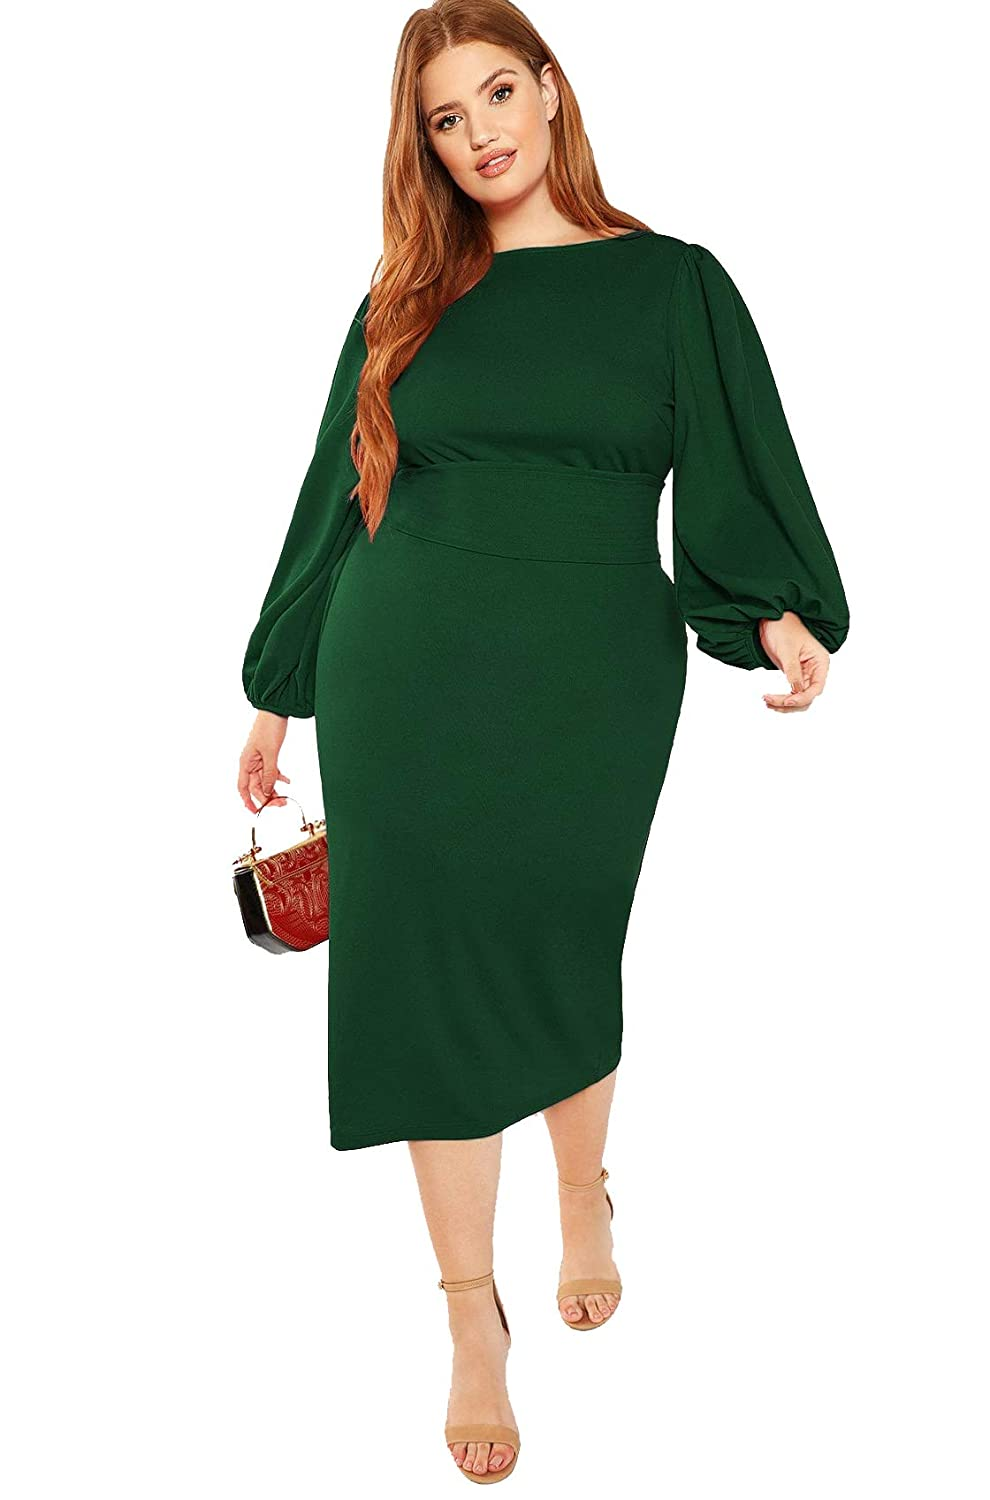 1950s Cocktail Dresses, Party Dresses Milumia Womens Plus Size Round Neck Long Lantern Sleeve Belted Pencil Dress $39.88 AT vintagedancer.com